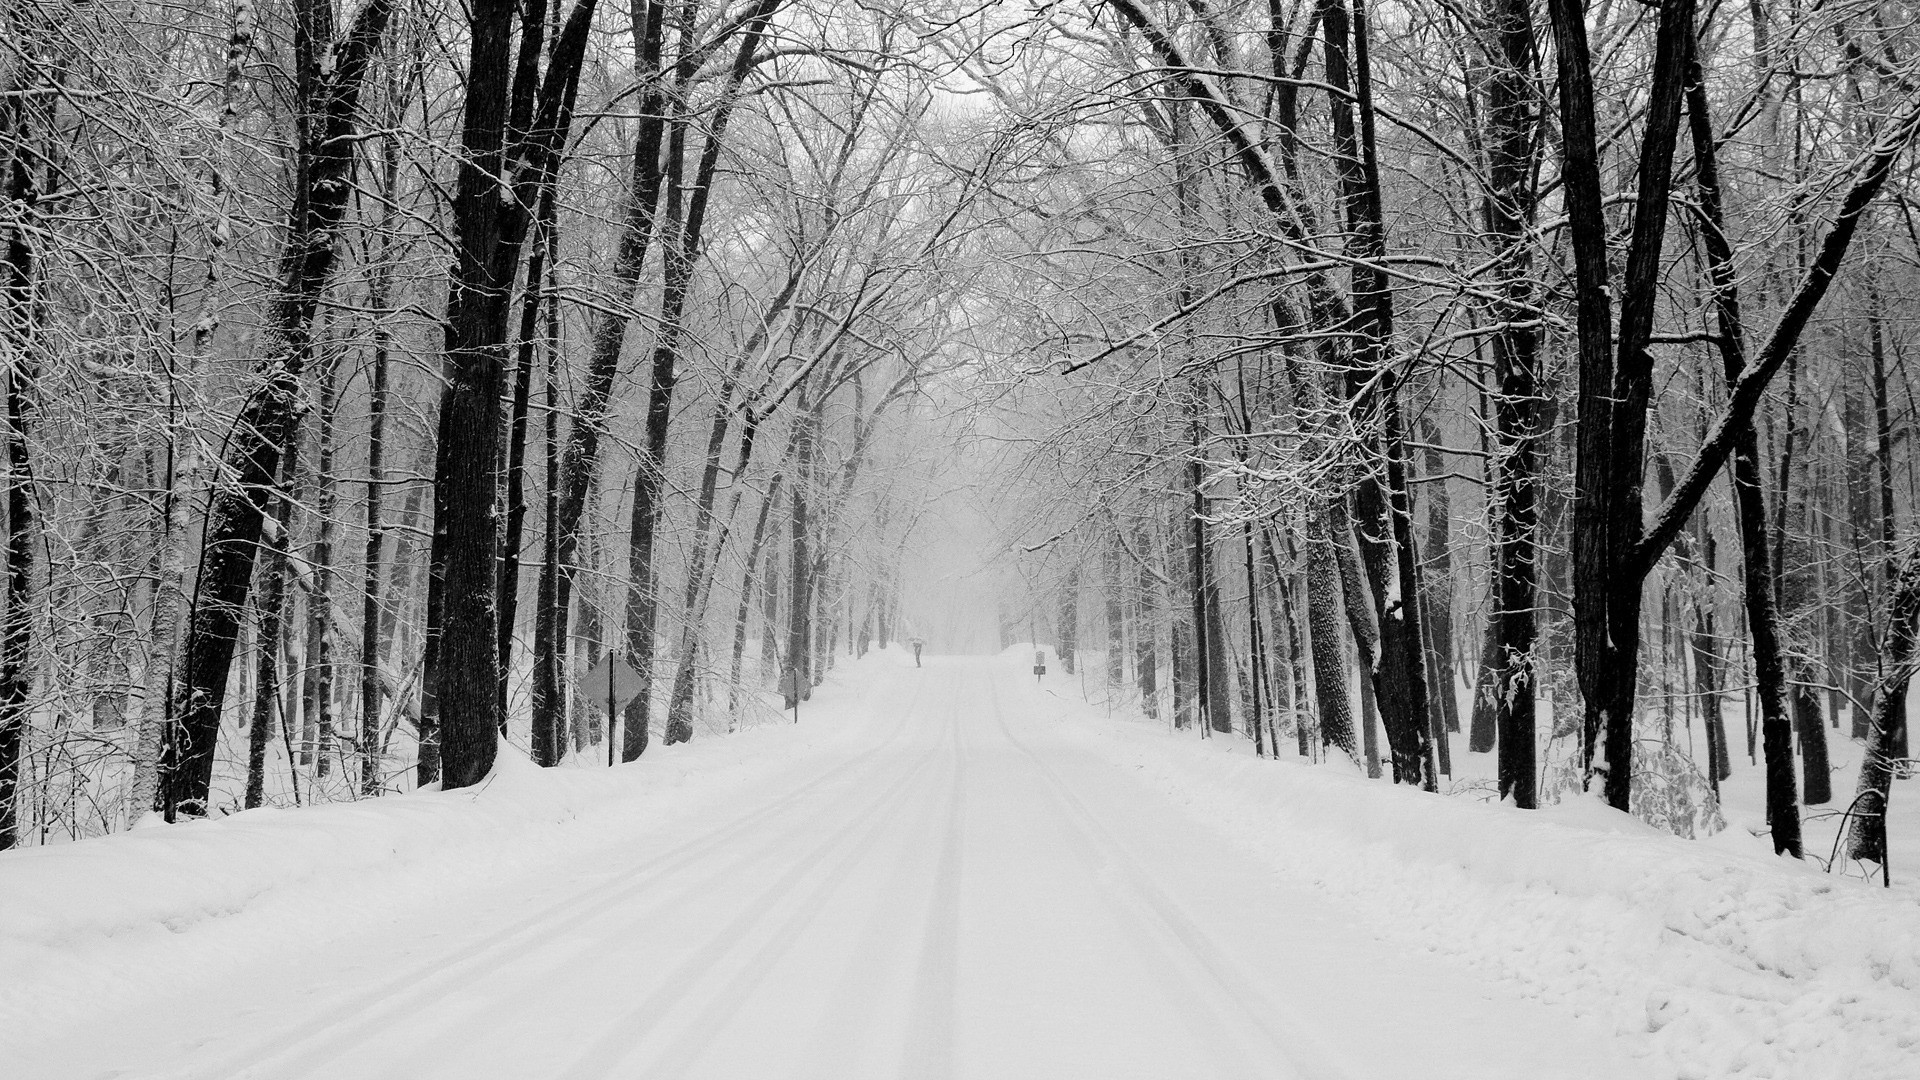 Explore Forest Wallpaper, Nature Wallpaper, and more! Snowy Road